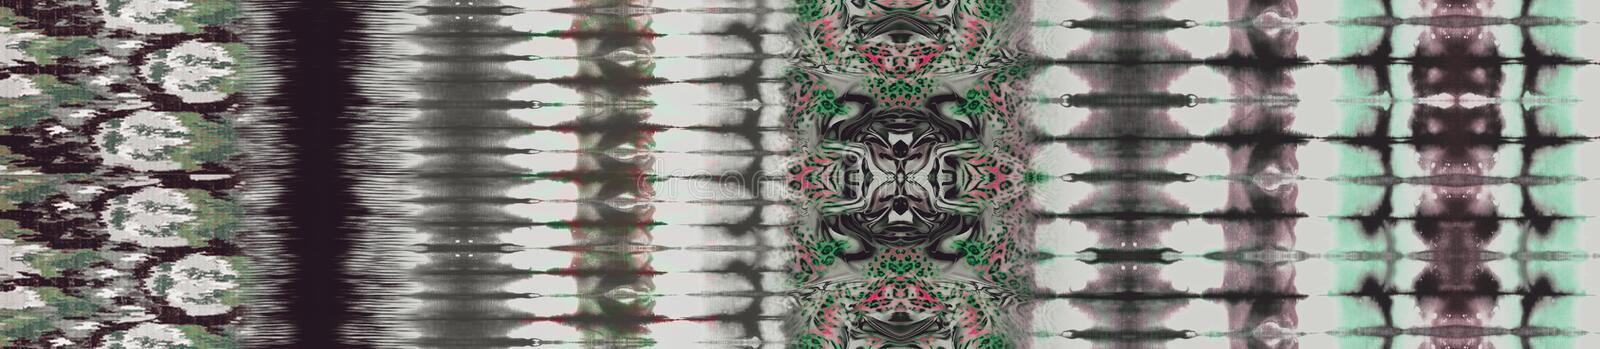 Abstract vintage green tie dye design background. Shibori,abstract background royalty free illustration